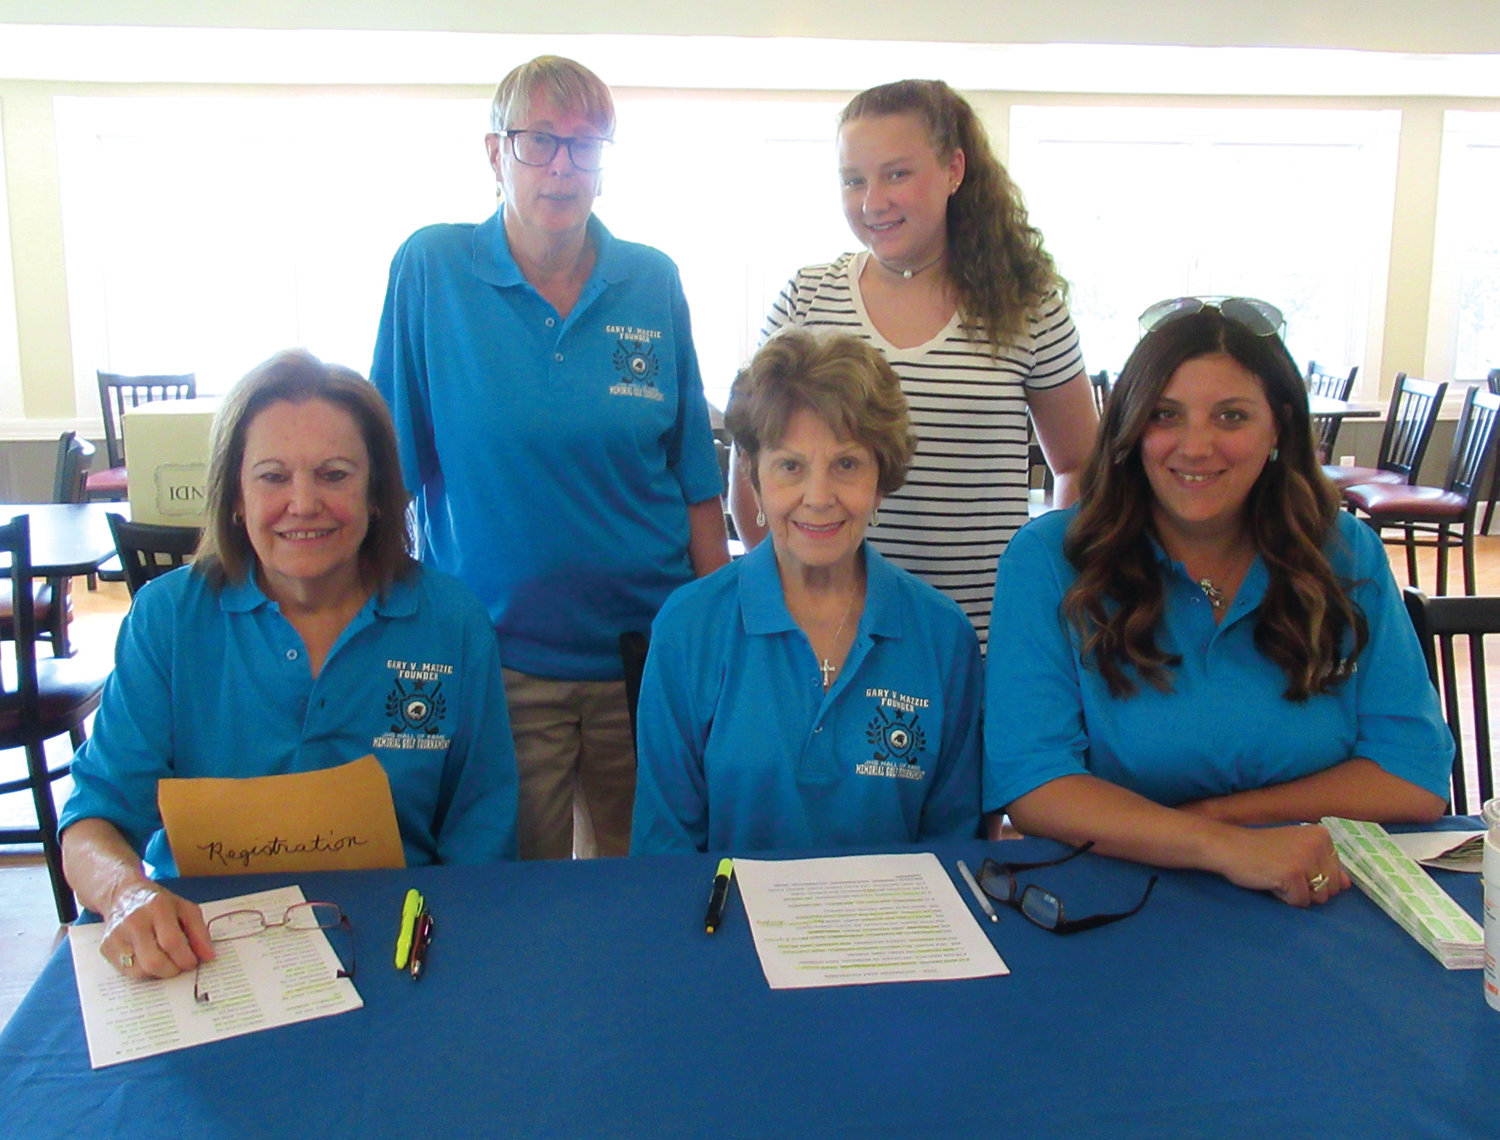 SPECIAL SUPPORTERS: Ladies like Lois Hopkins, Lee Mazzie, Samantha Mazzie, Jan Zucchi and Kristen Ryan served as a great welcoming committee during Monday's golf Tourney and checked all the players in at Glocester Country club.